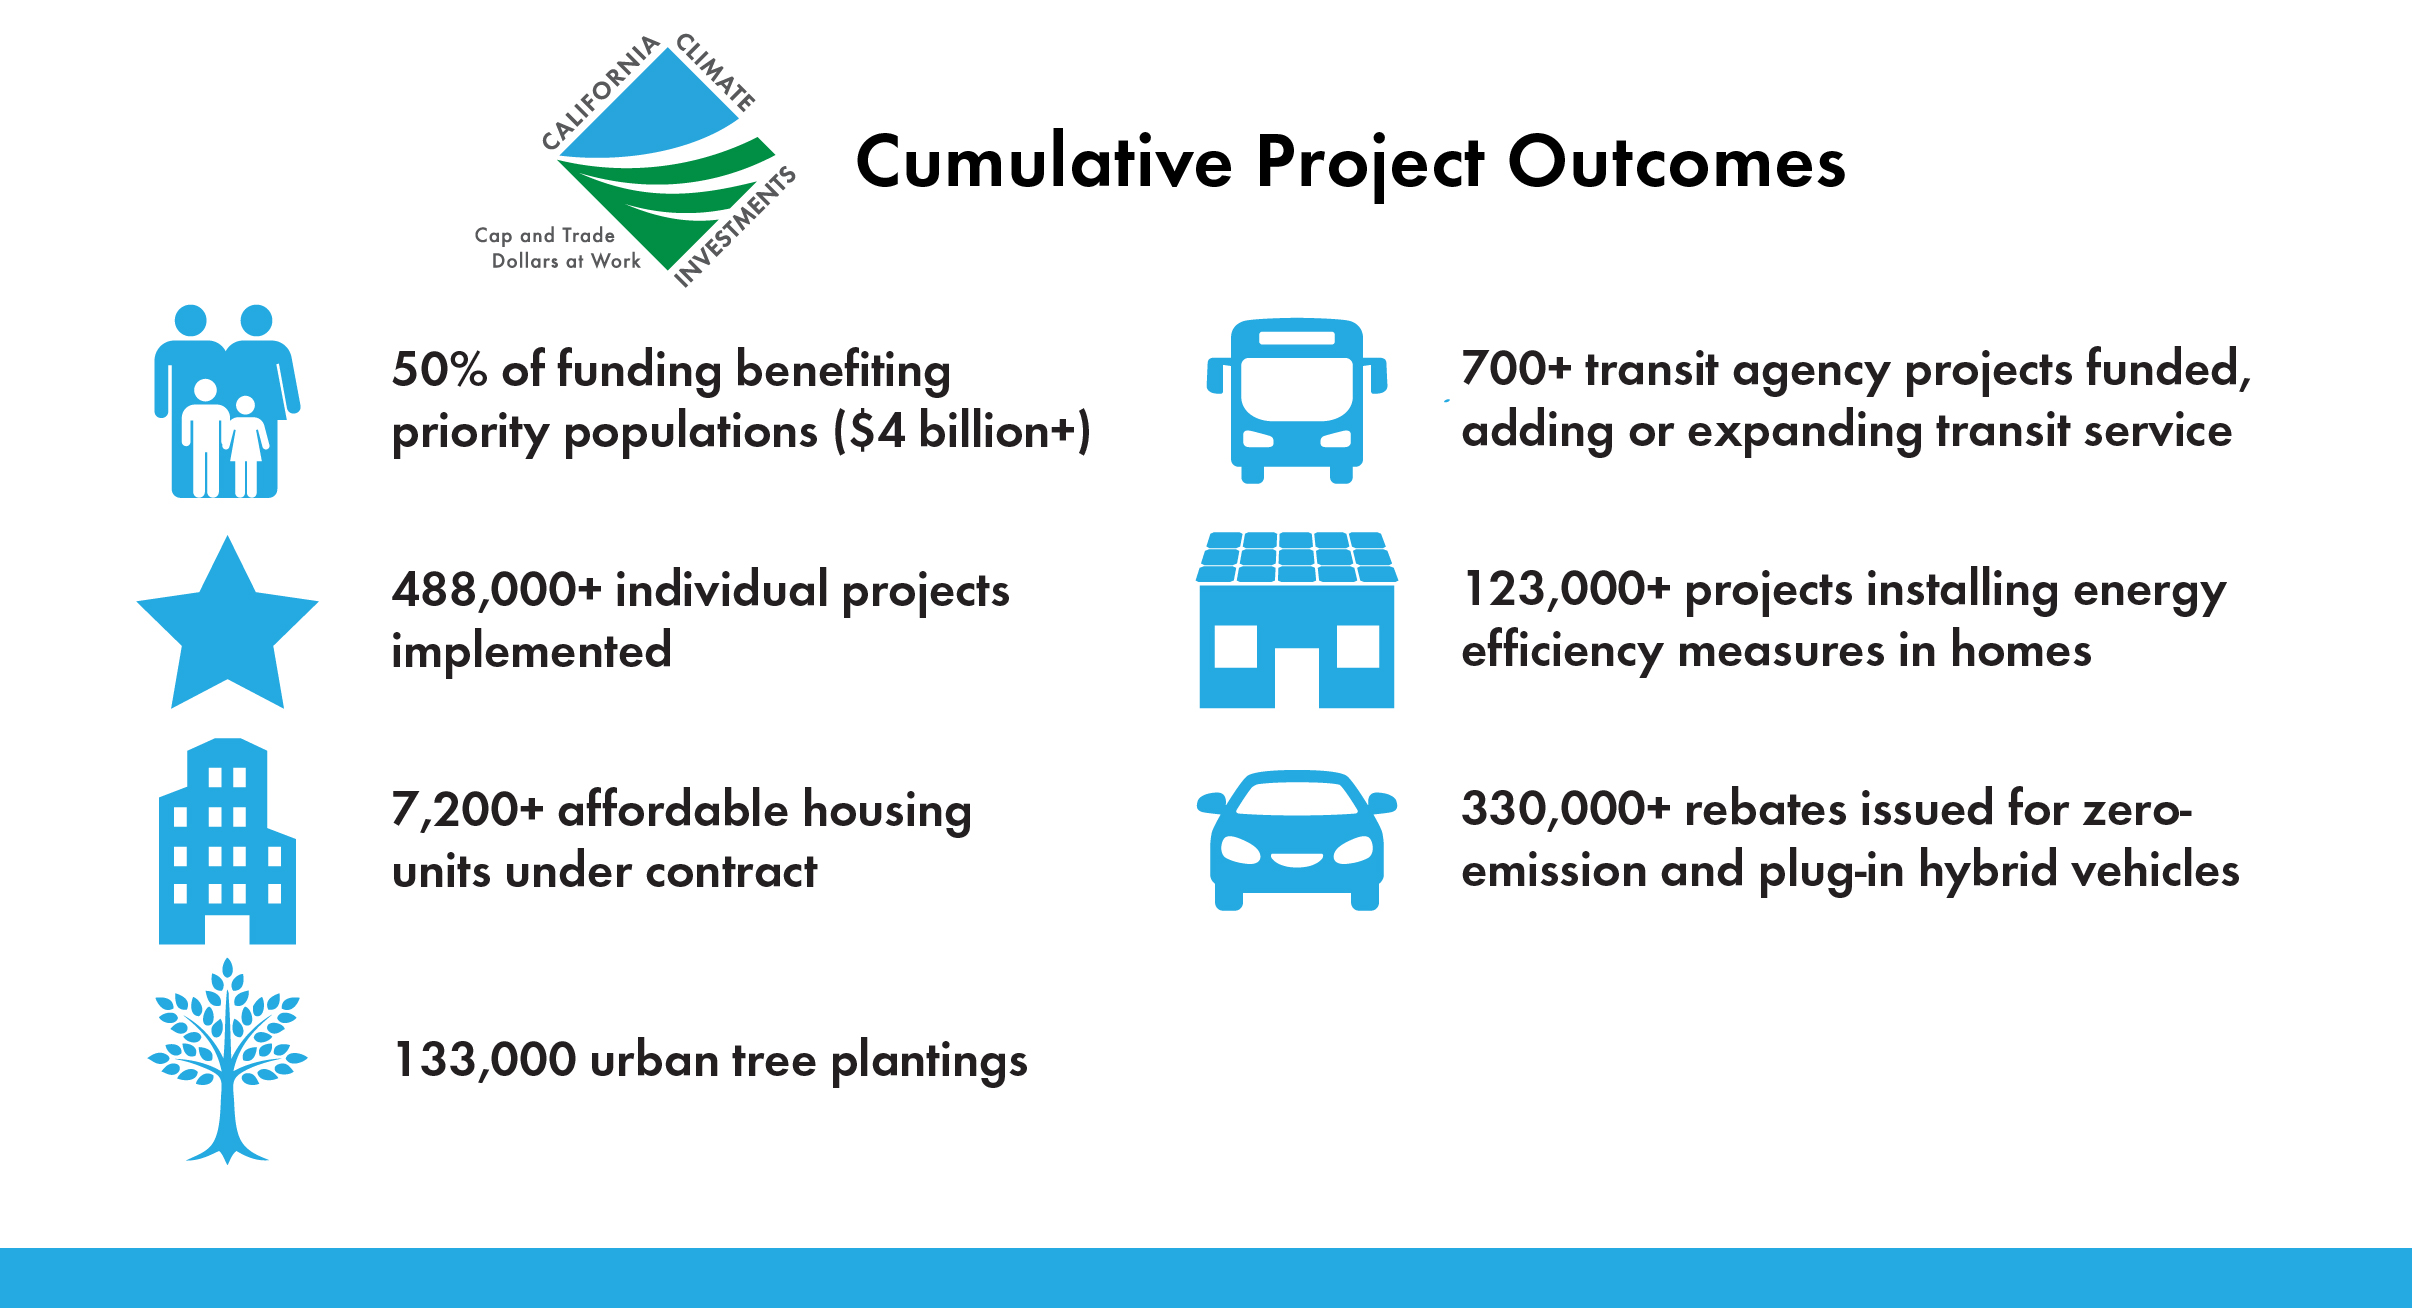 California Climate Investments Cumulative Project Outcomes graphic